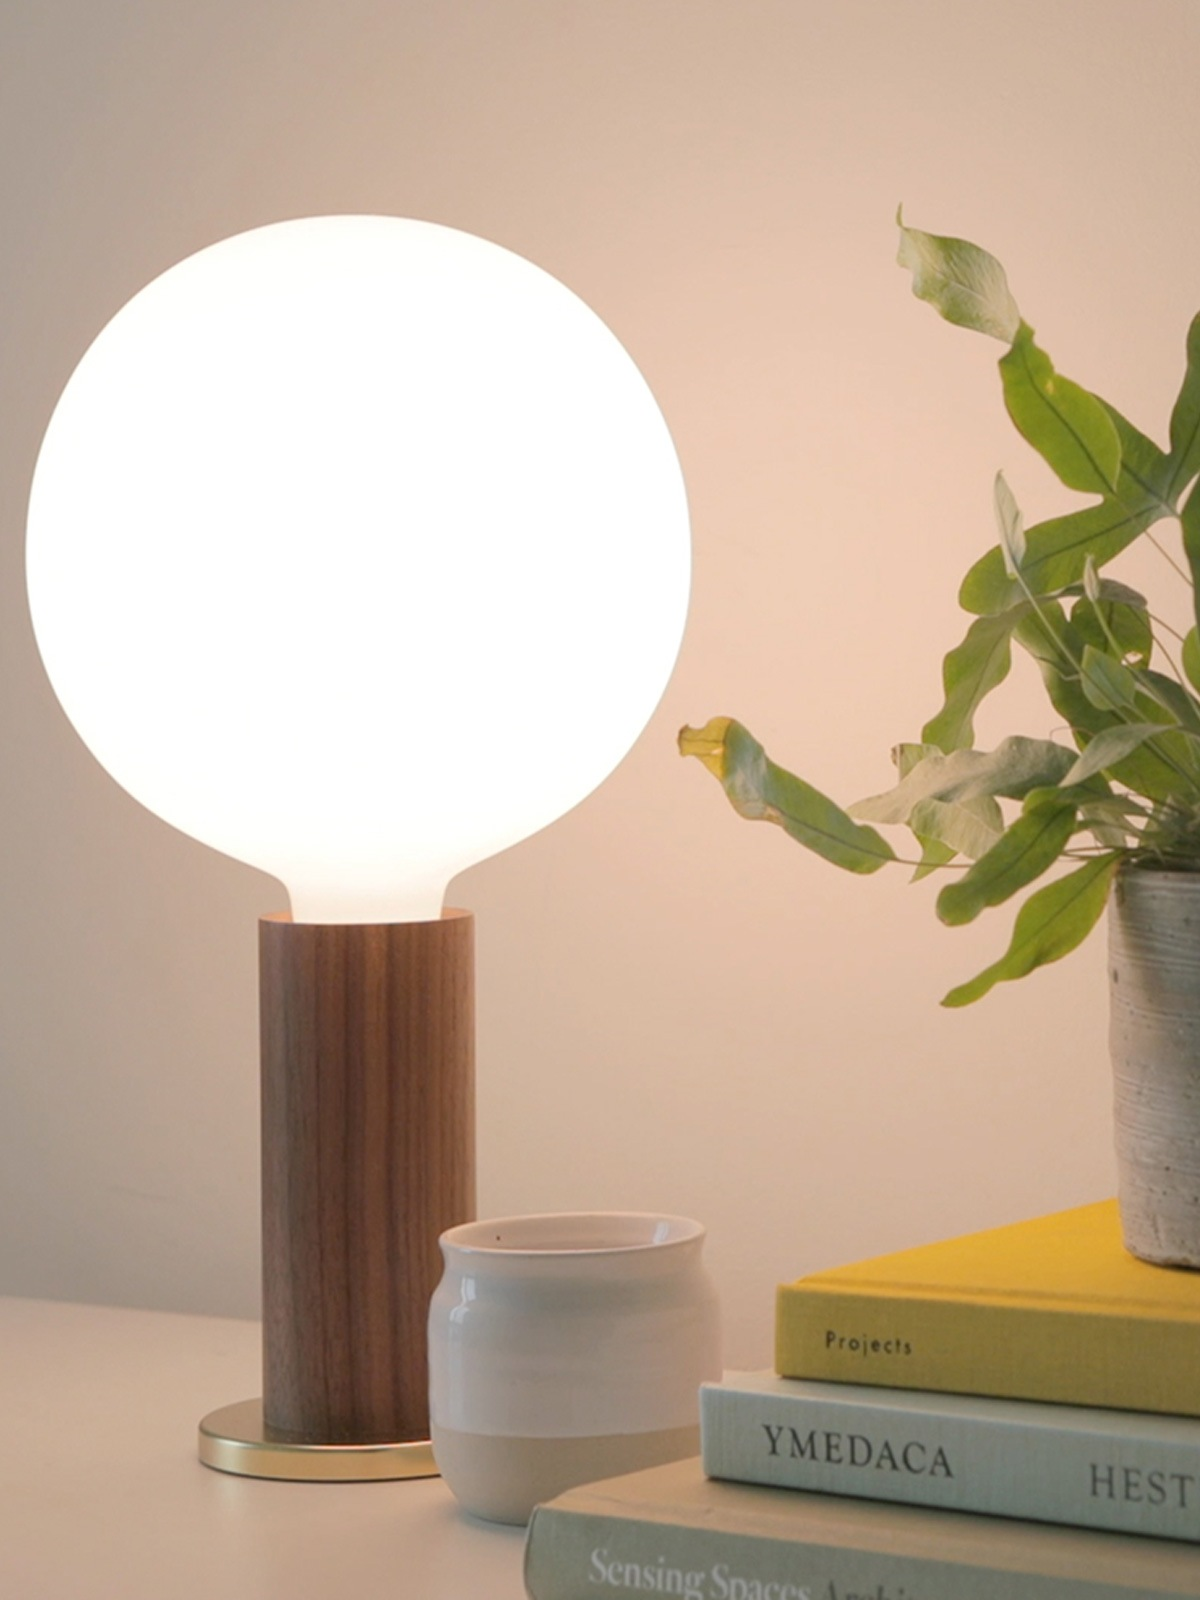 DesignOrt Blog: Knuckle Table Lamp Holz Tischlampe DesignOrt Onlineshop Lampen Berlin